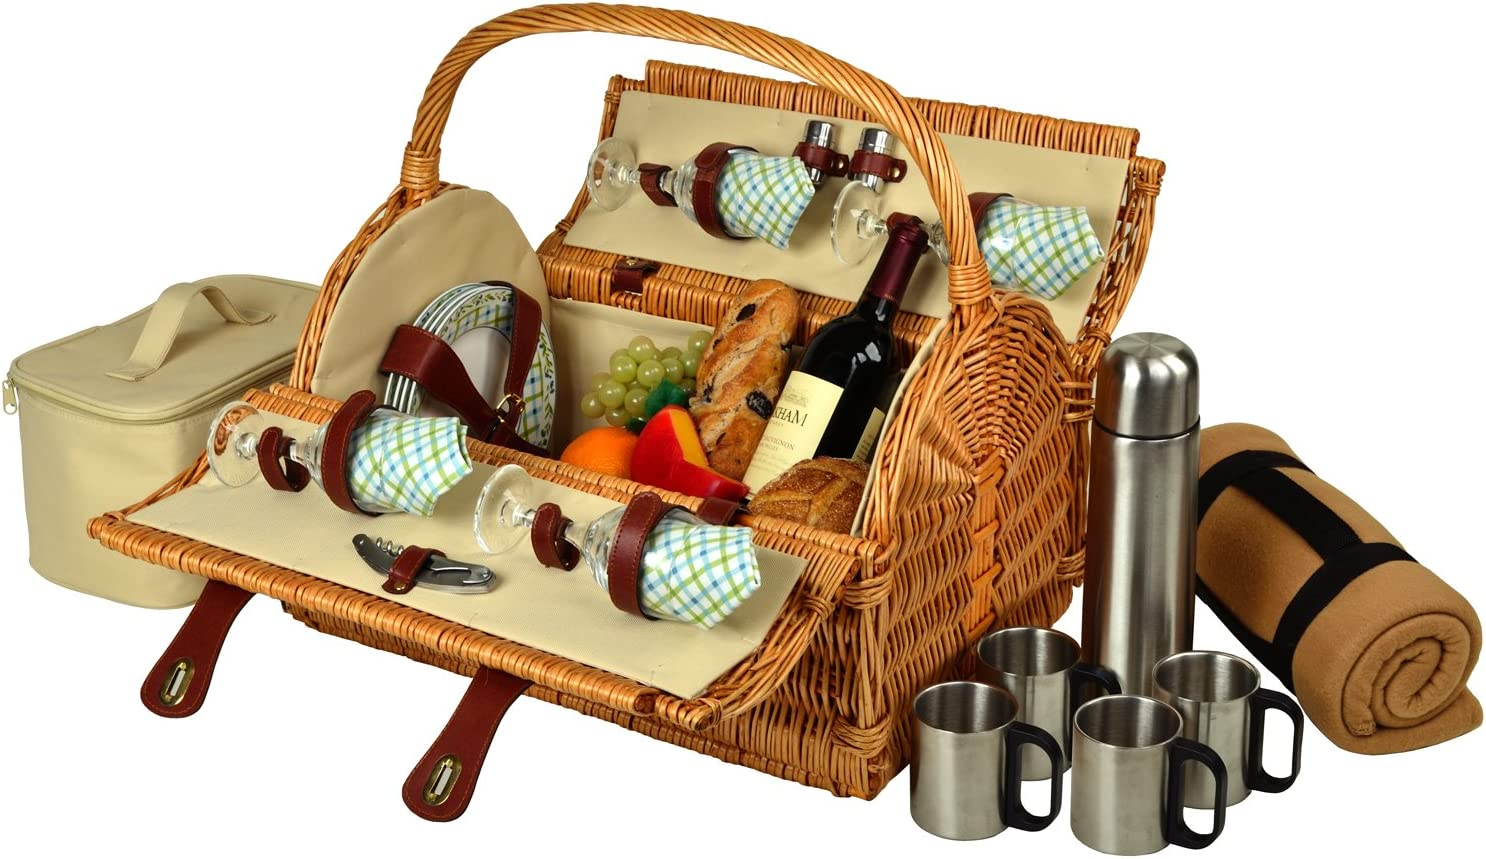 Picnic at Ascot Yorkshire Willow Picnic Basket with Service for 4 with Blanket and Coffee Set